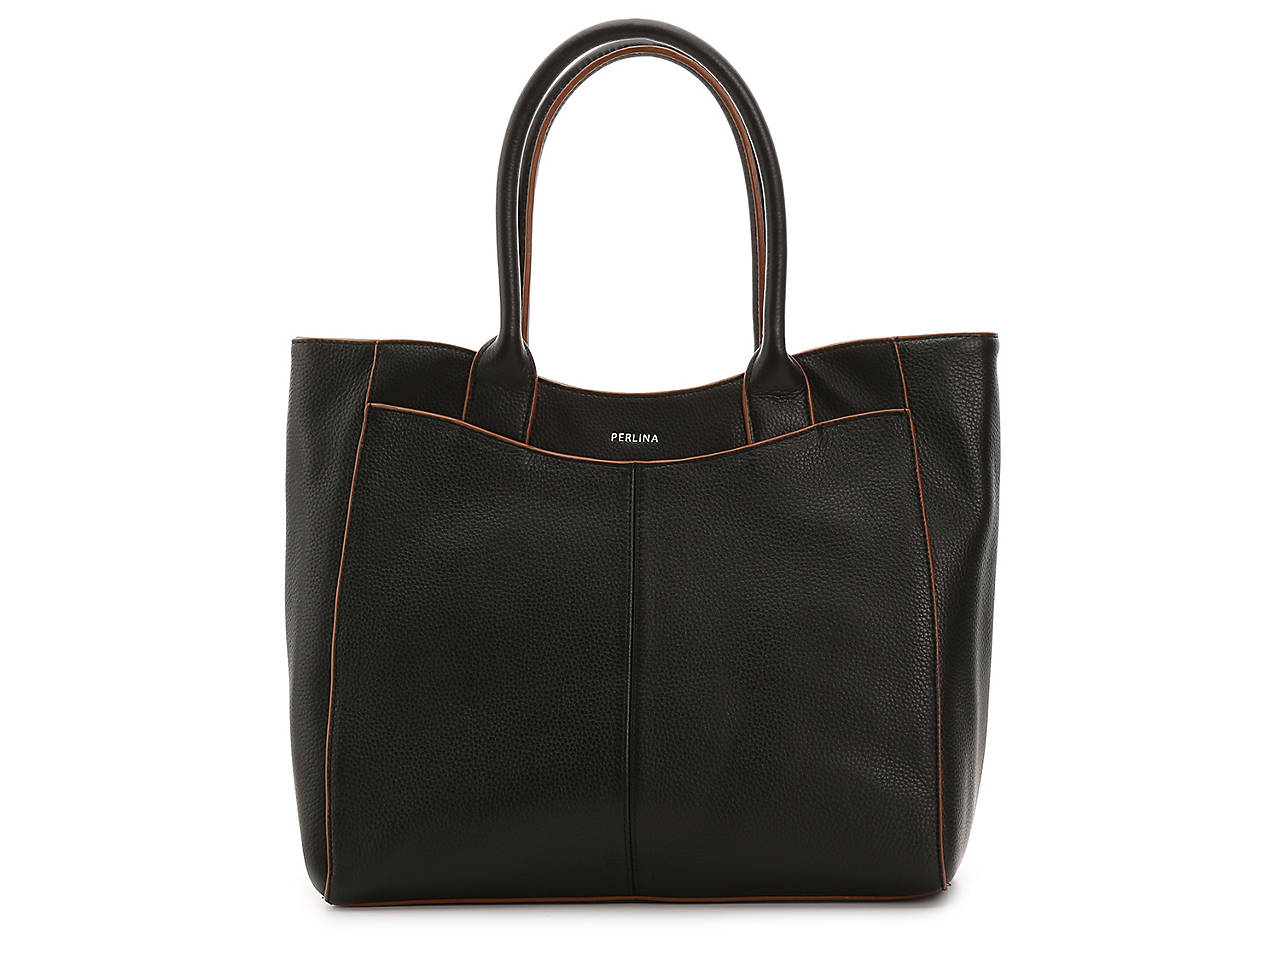 Amelia Leather Tote Bag